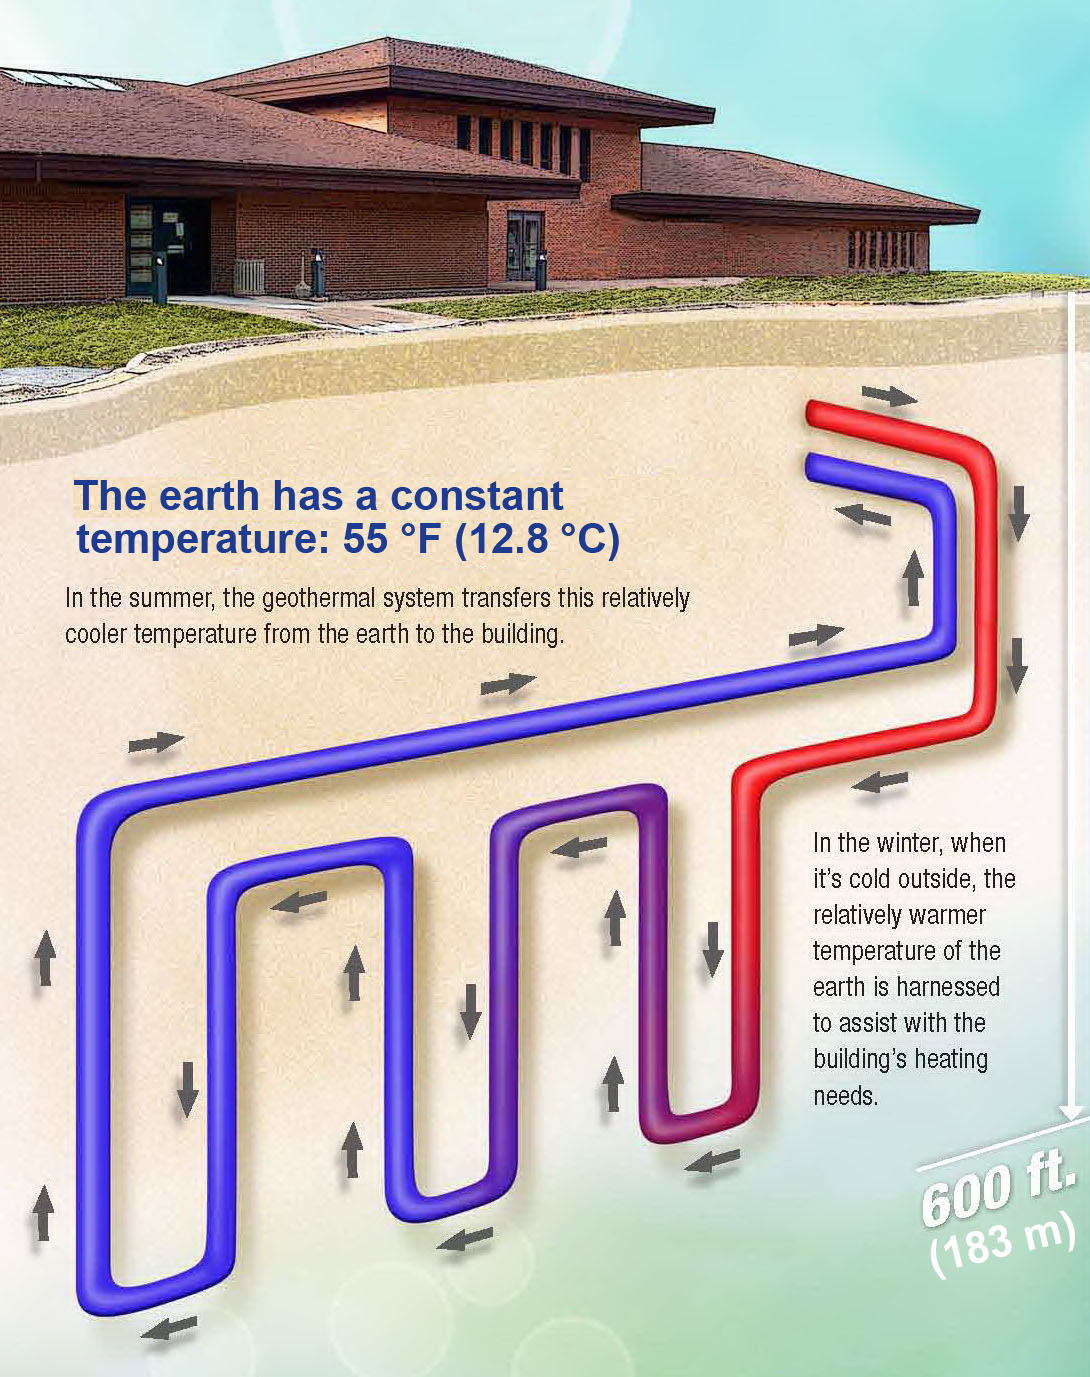 ... energy facts: Geothermal heating and cooling systems can reduce energy